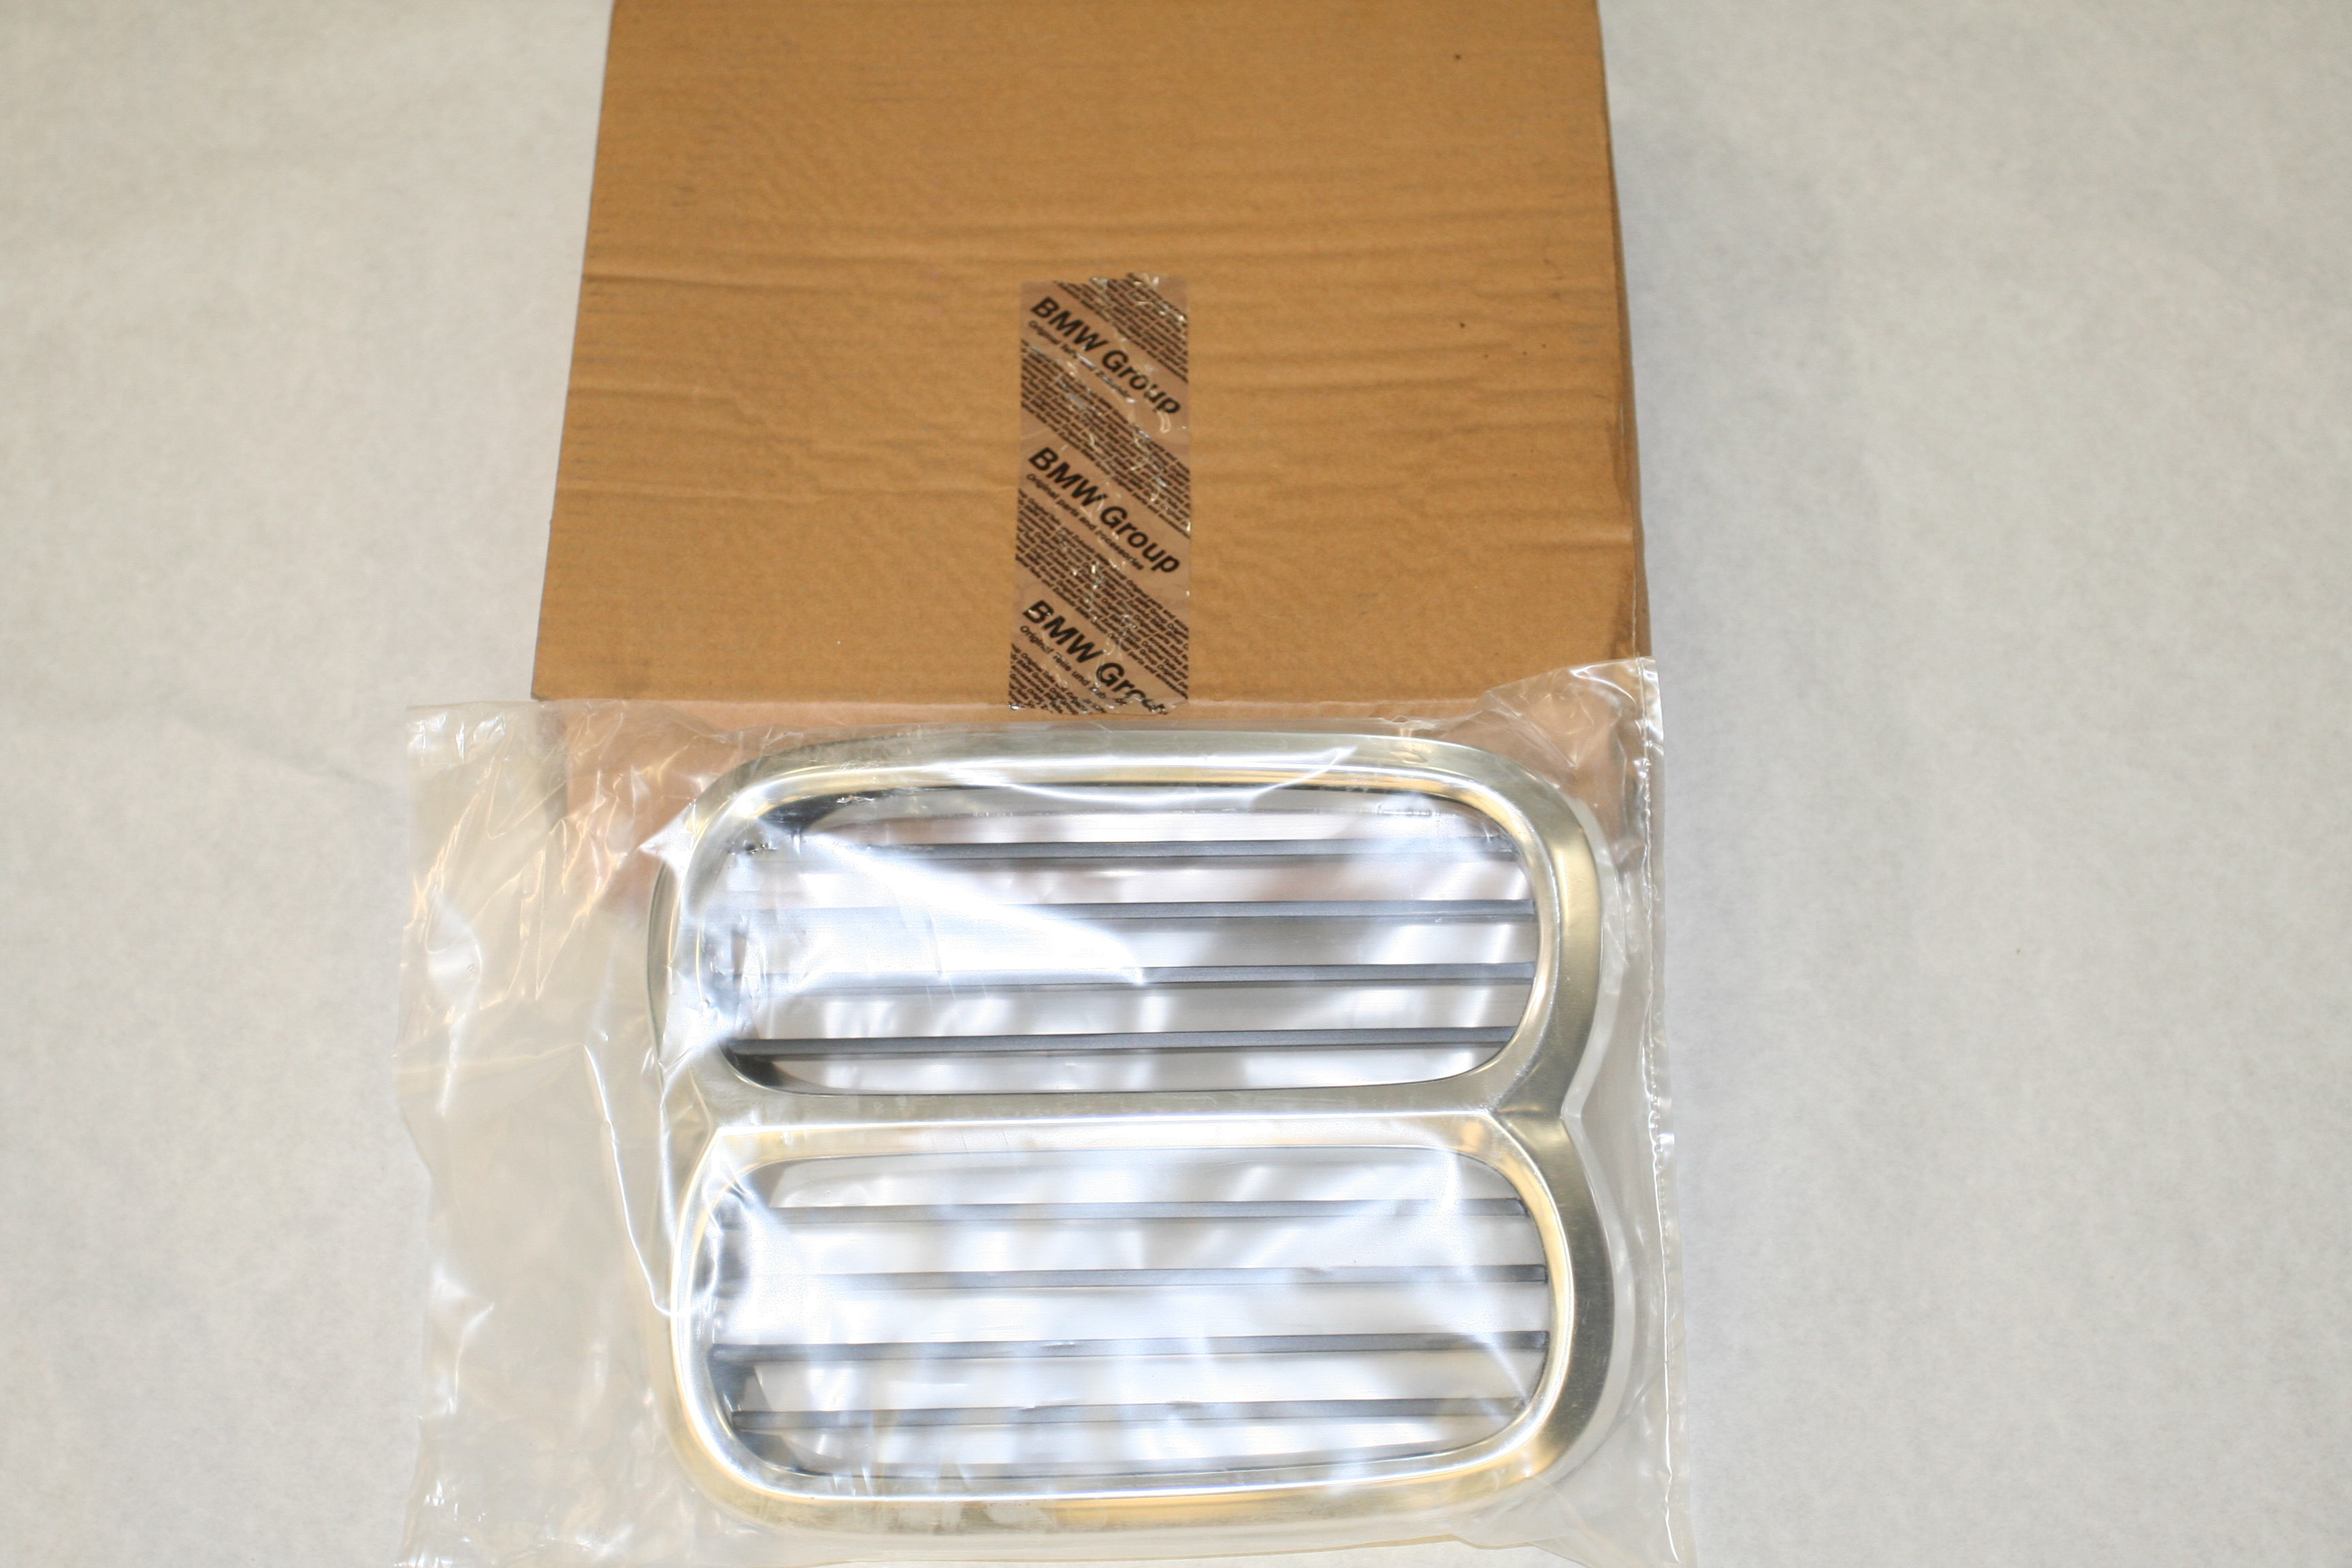 E10 74-76 Front Center Grille,New - Parts For Sale - BMW 2002 FAQ